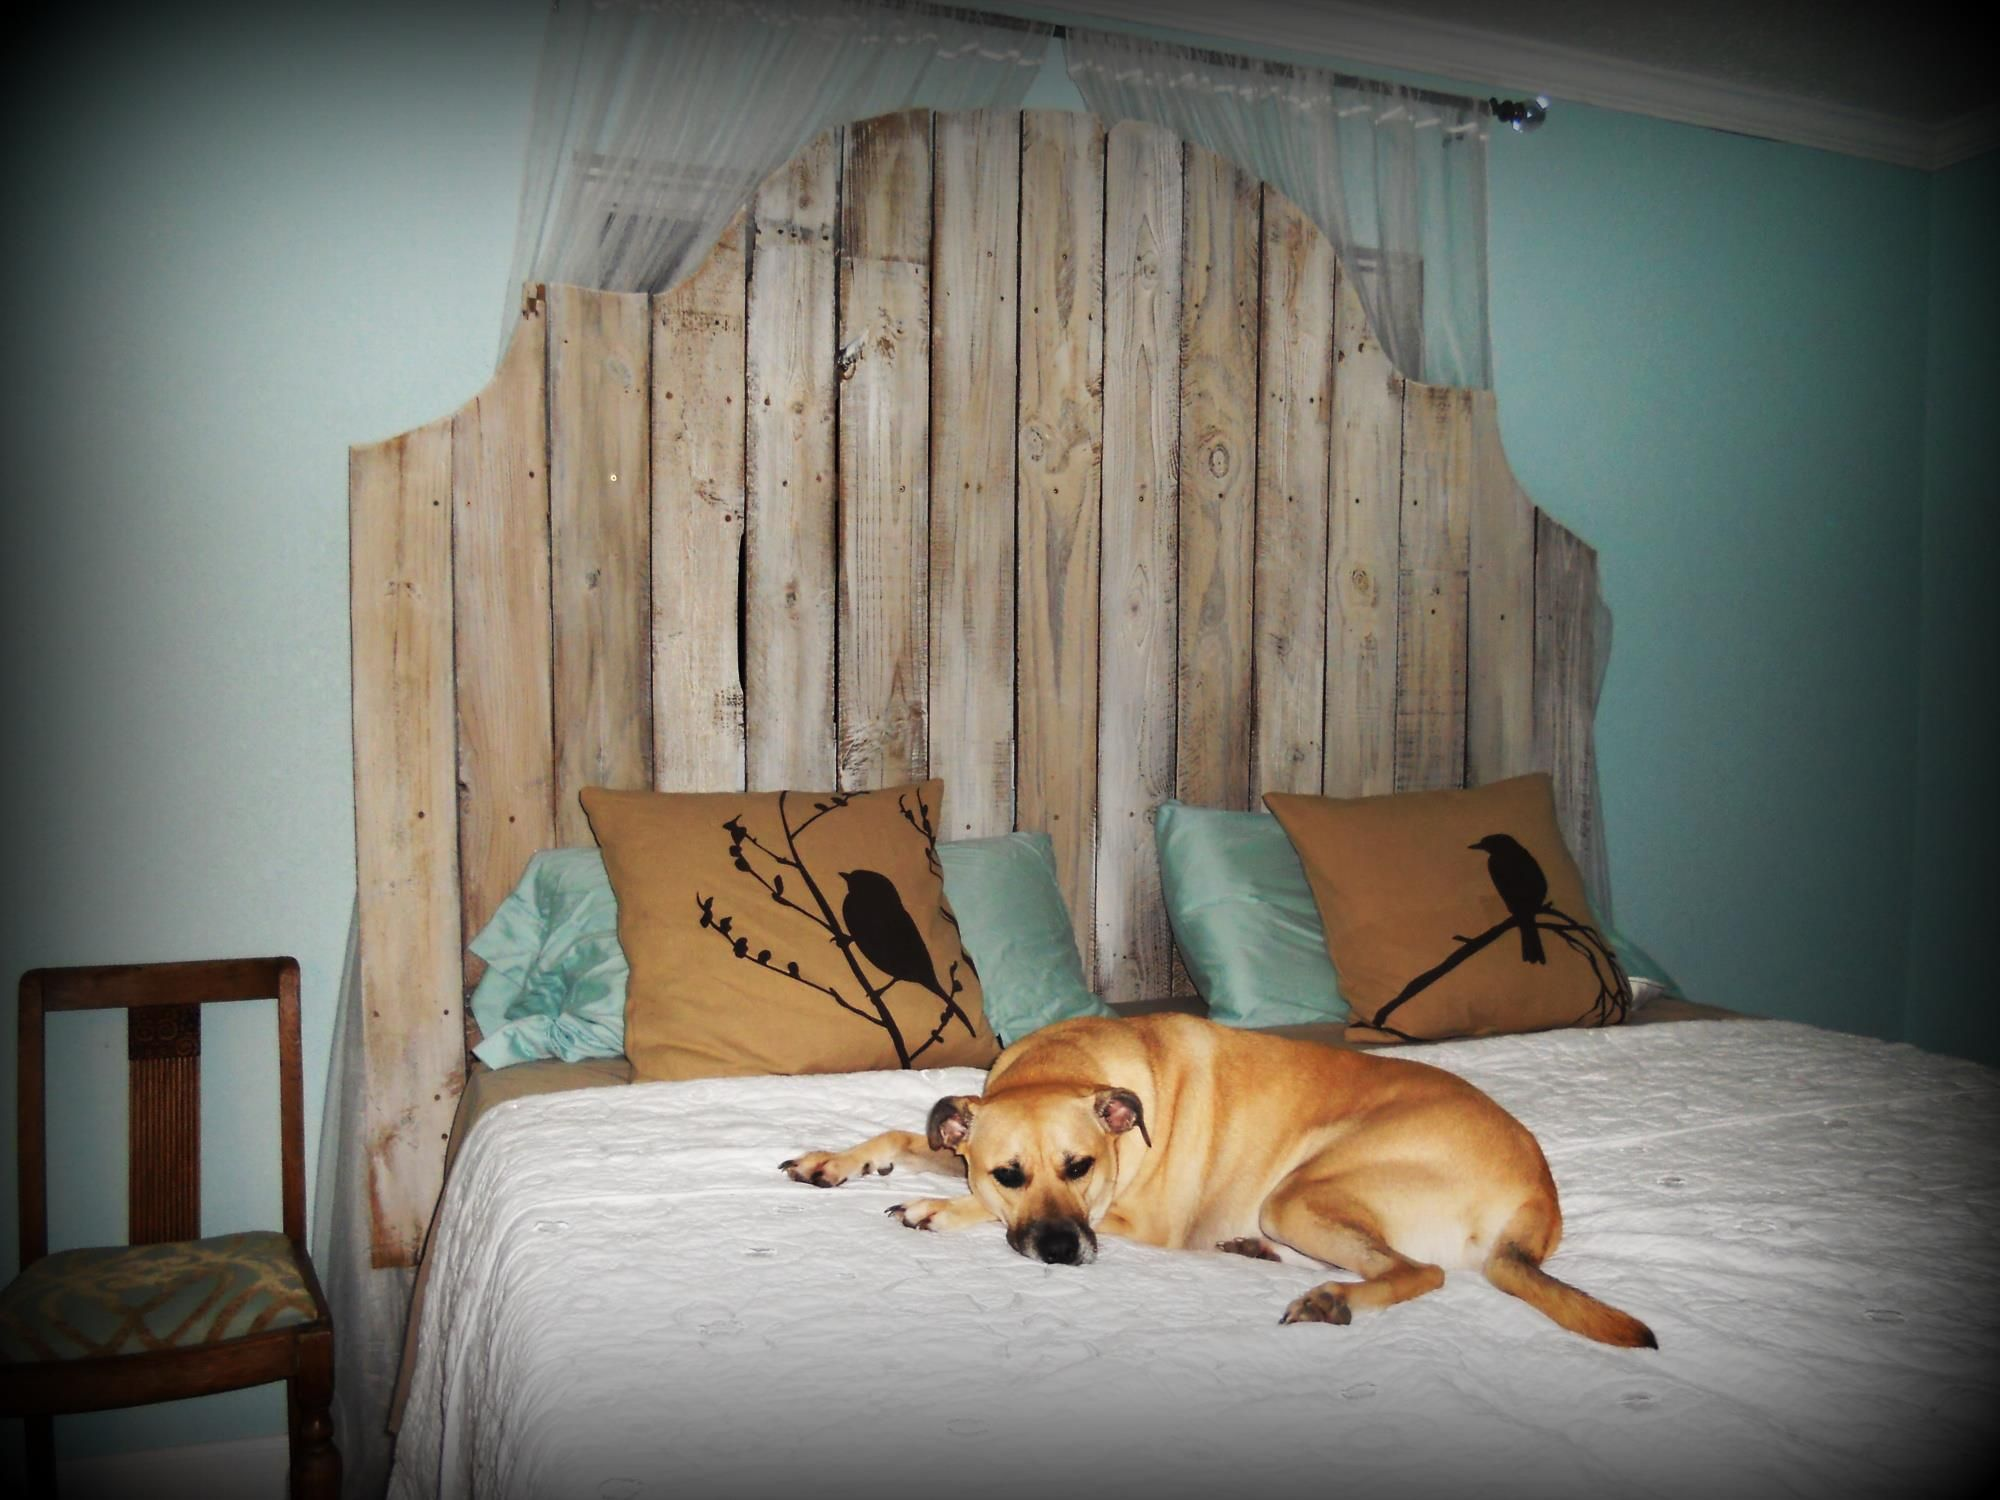 Rustic headboard made from old fence pickets diy for Bedroom headboard ideas